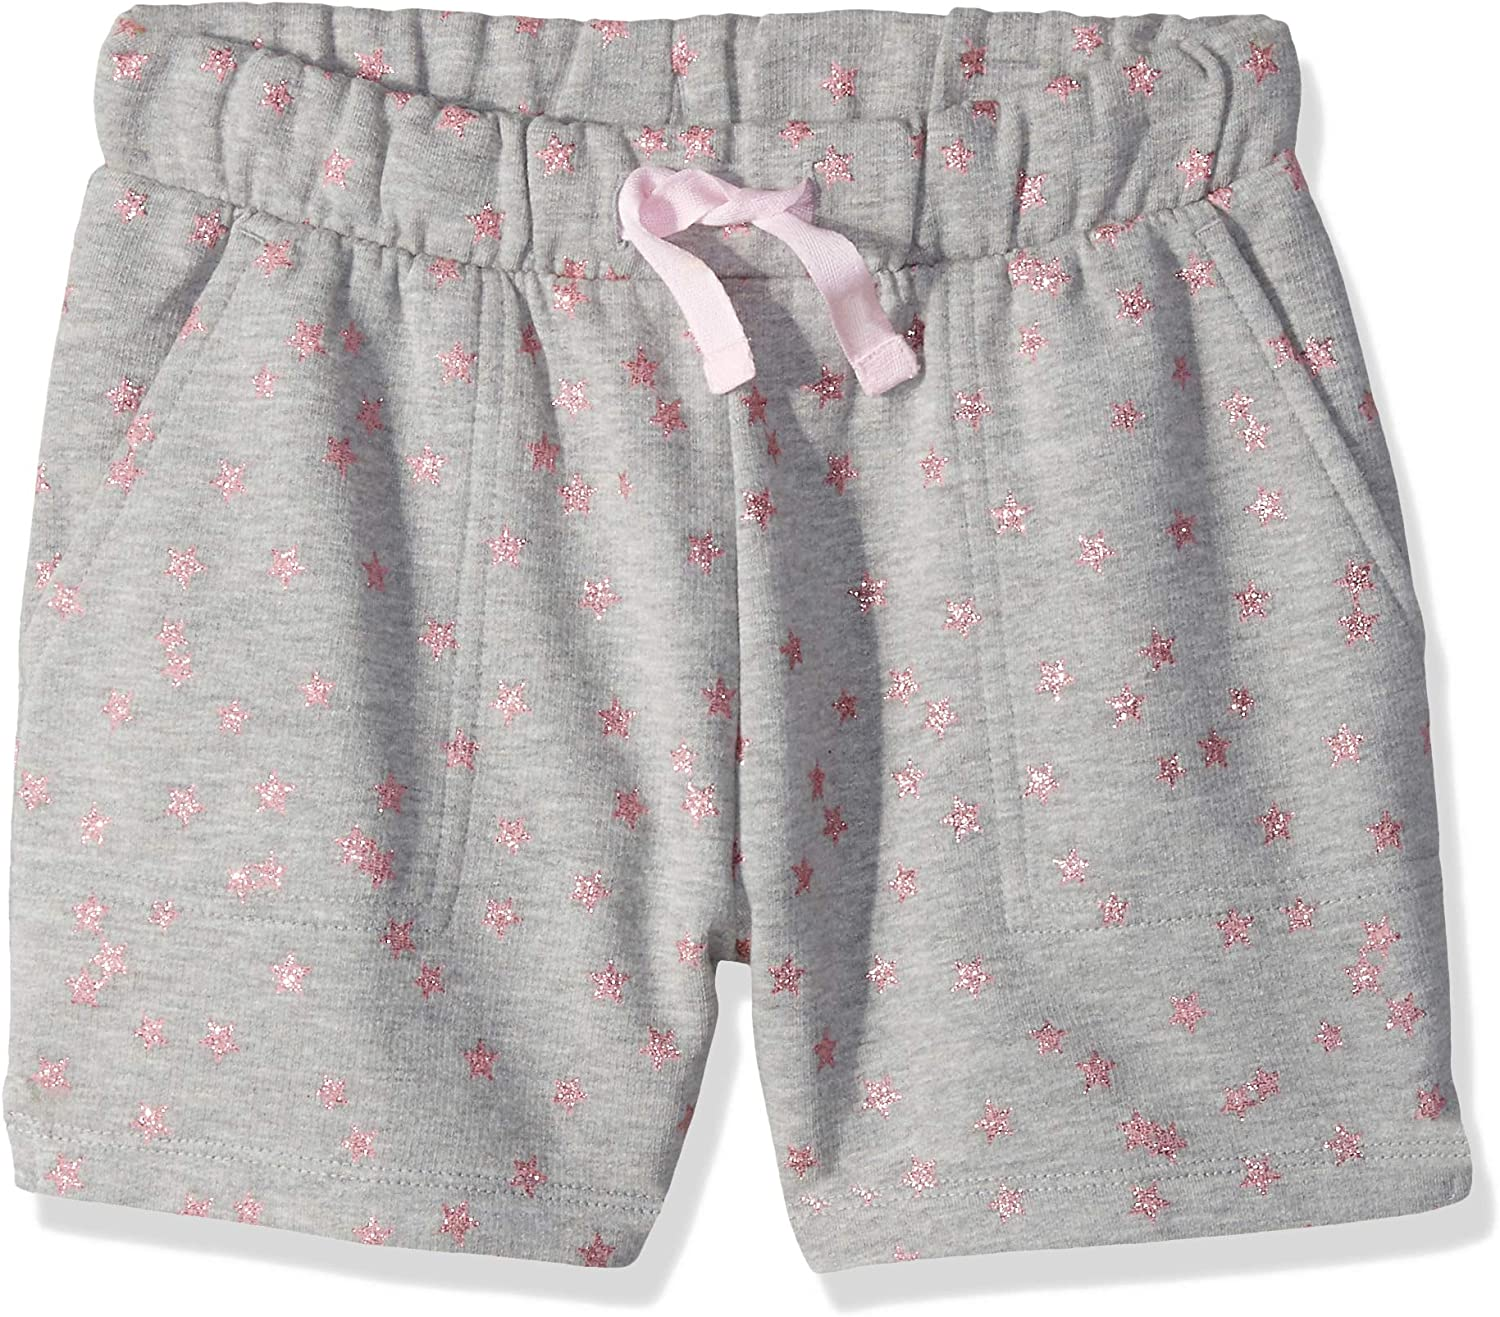 LOOK by Crewcuts Girls Knit Short Casual Shorts